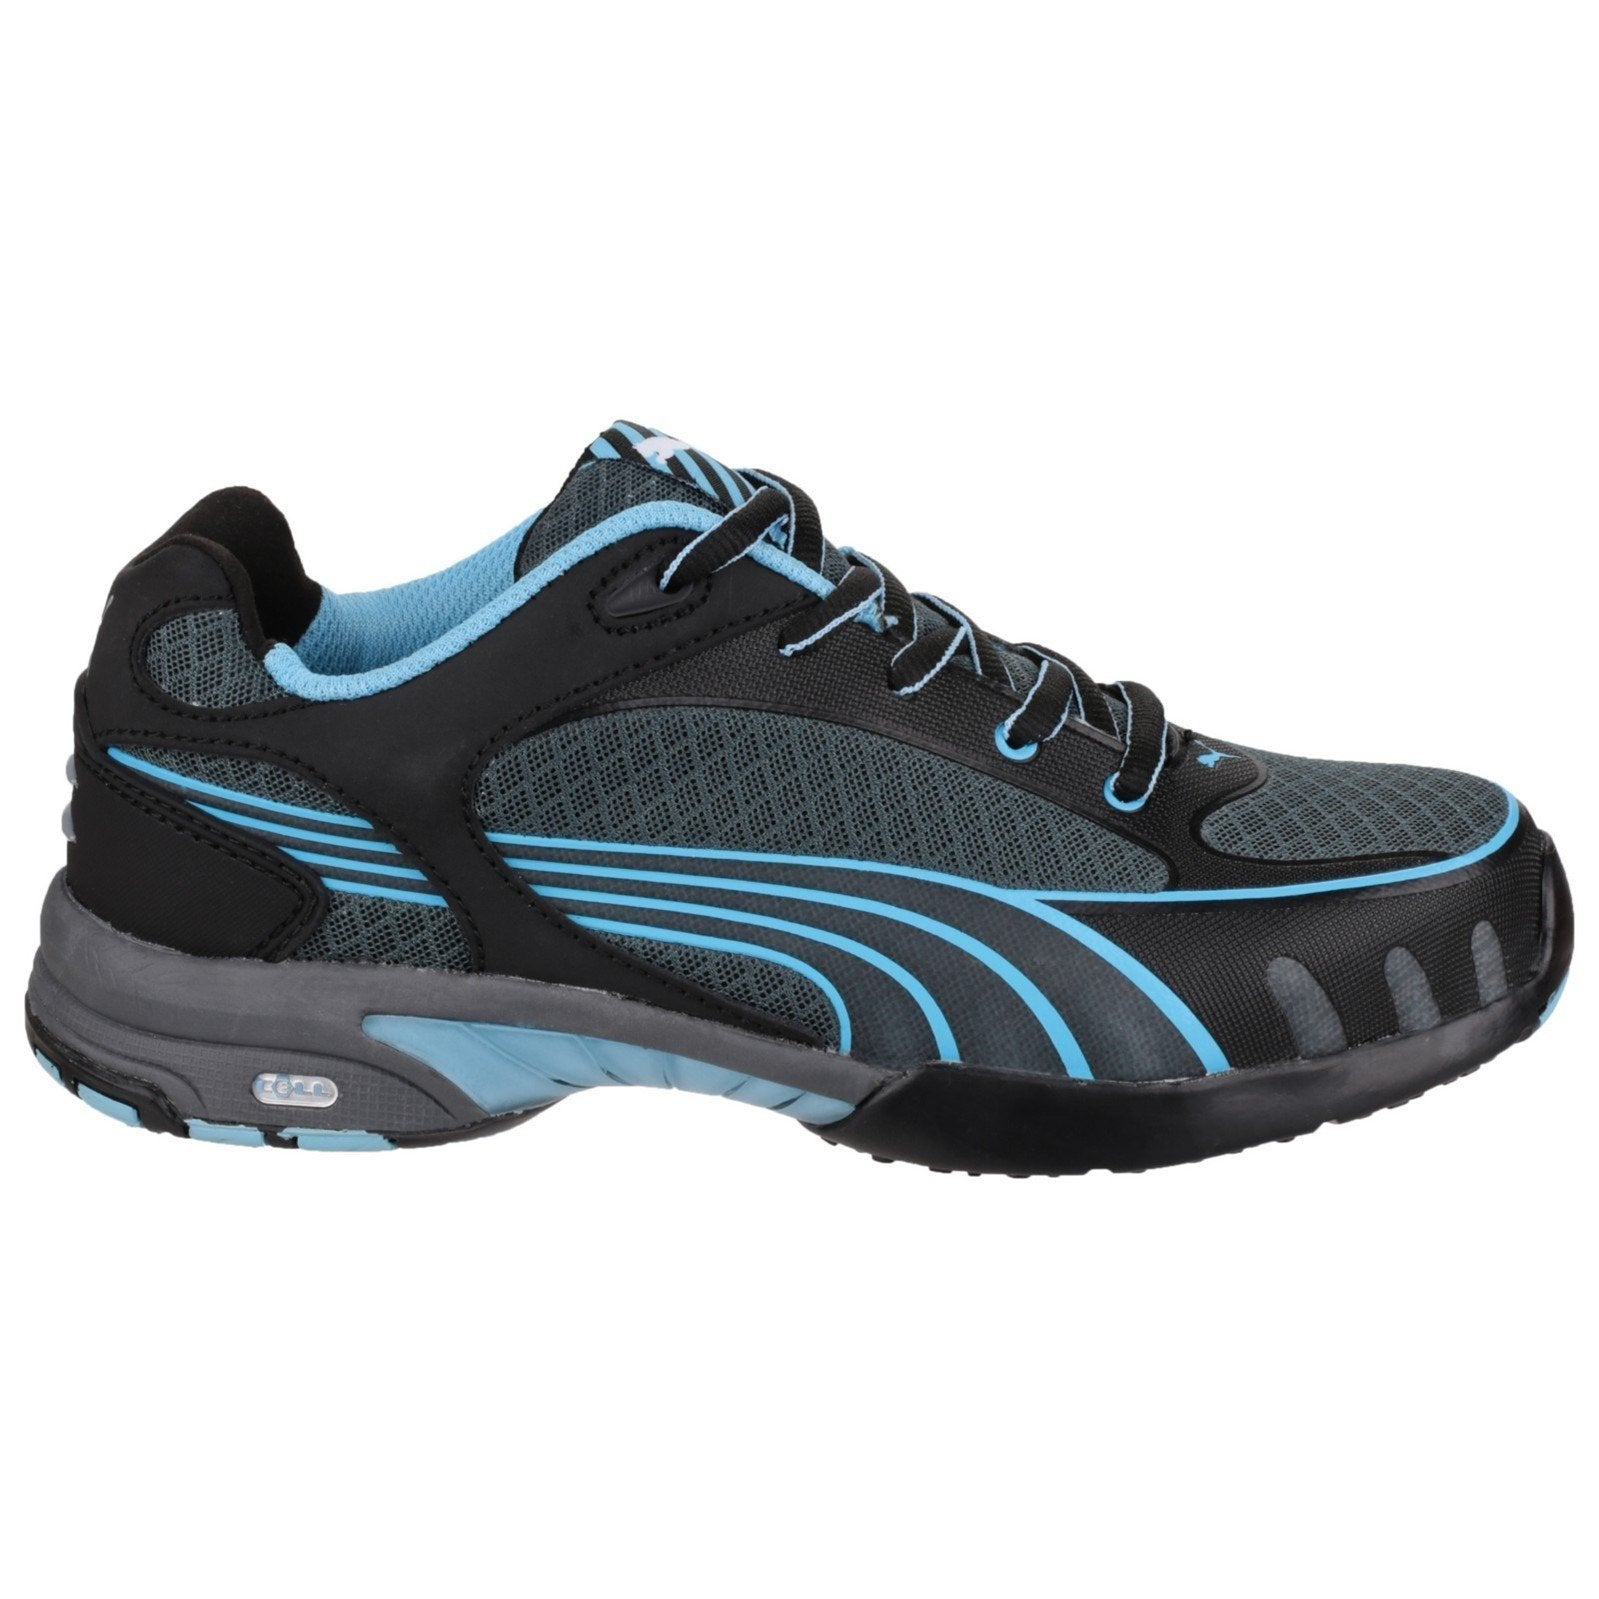 Puma Safety Fuse Motion Trainers